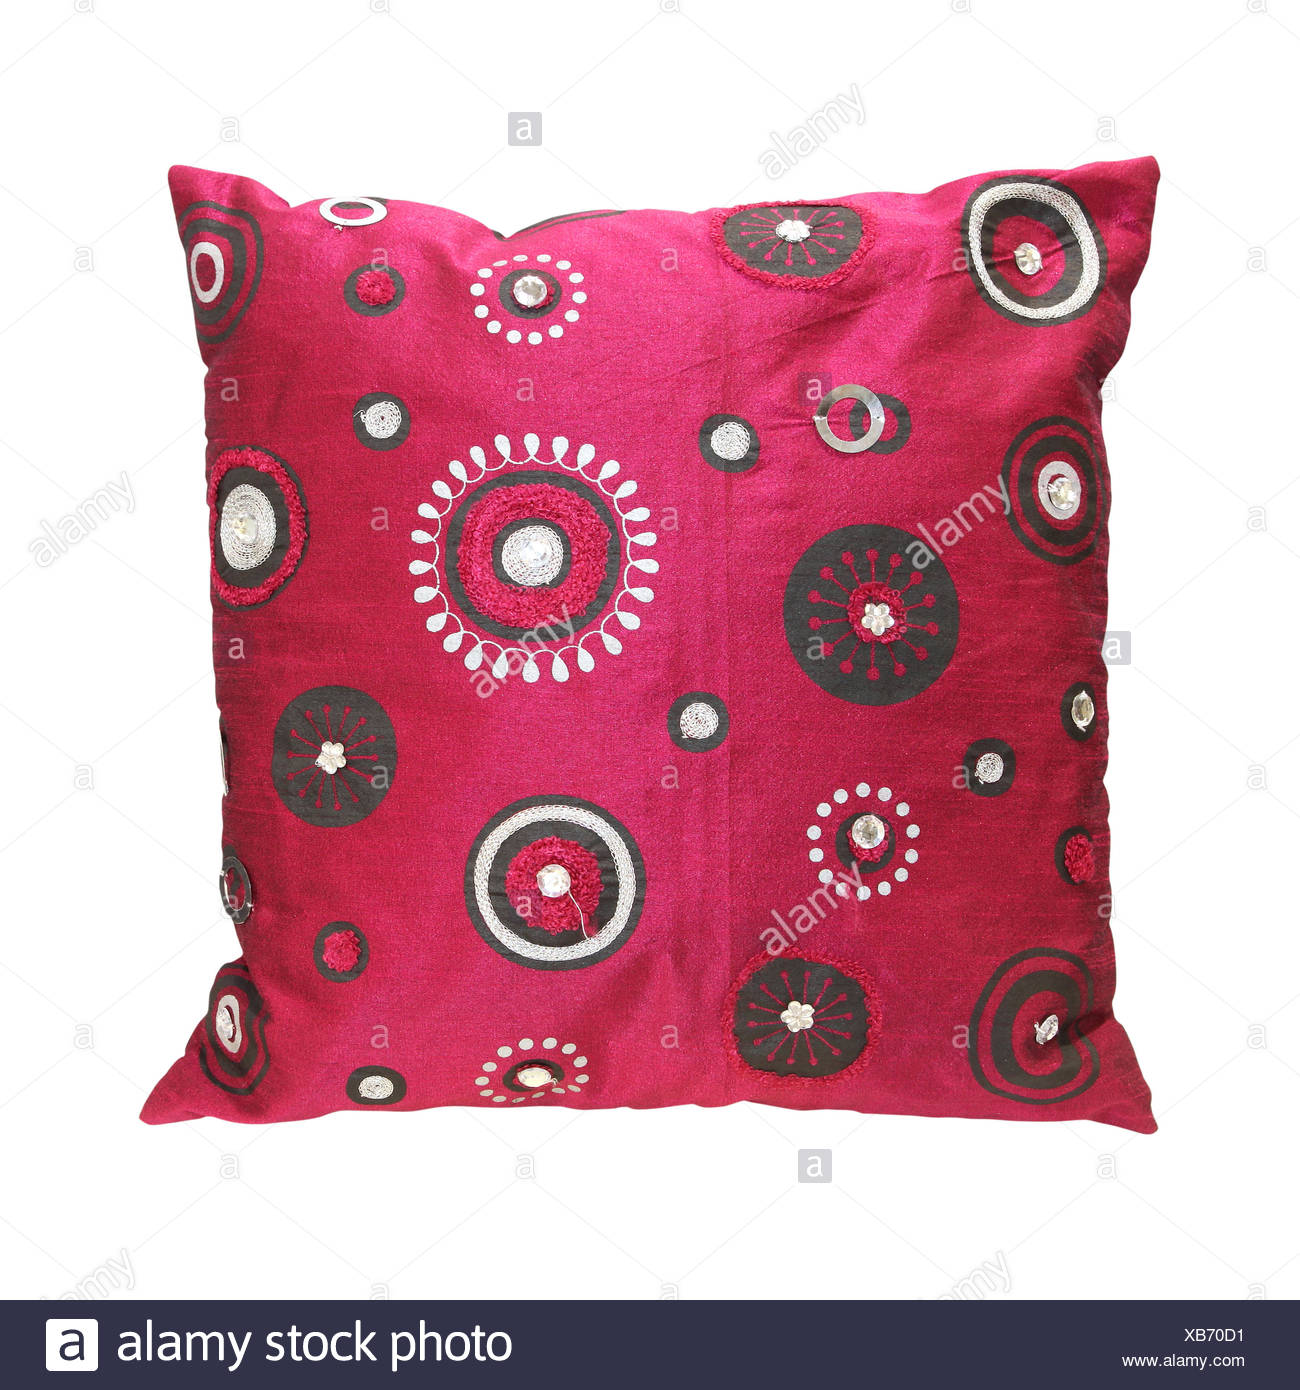 Circles pillow - Stock Image